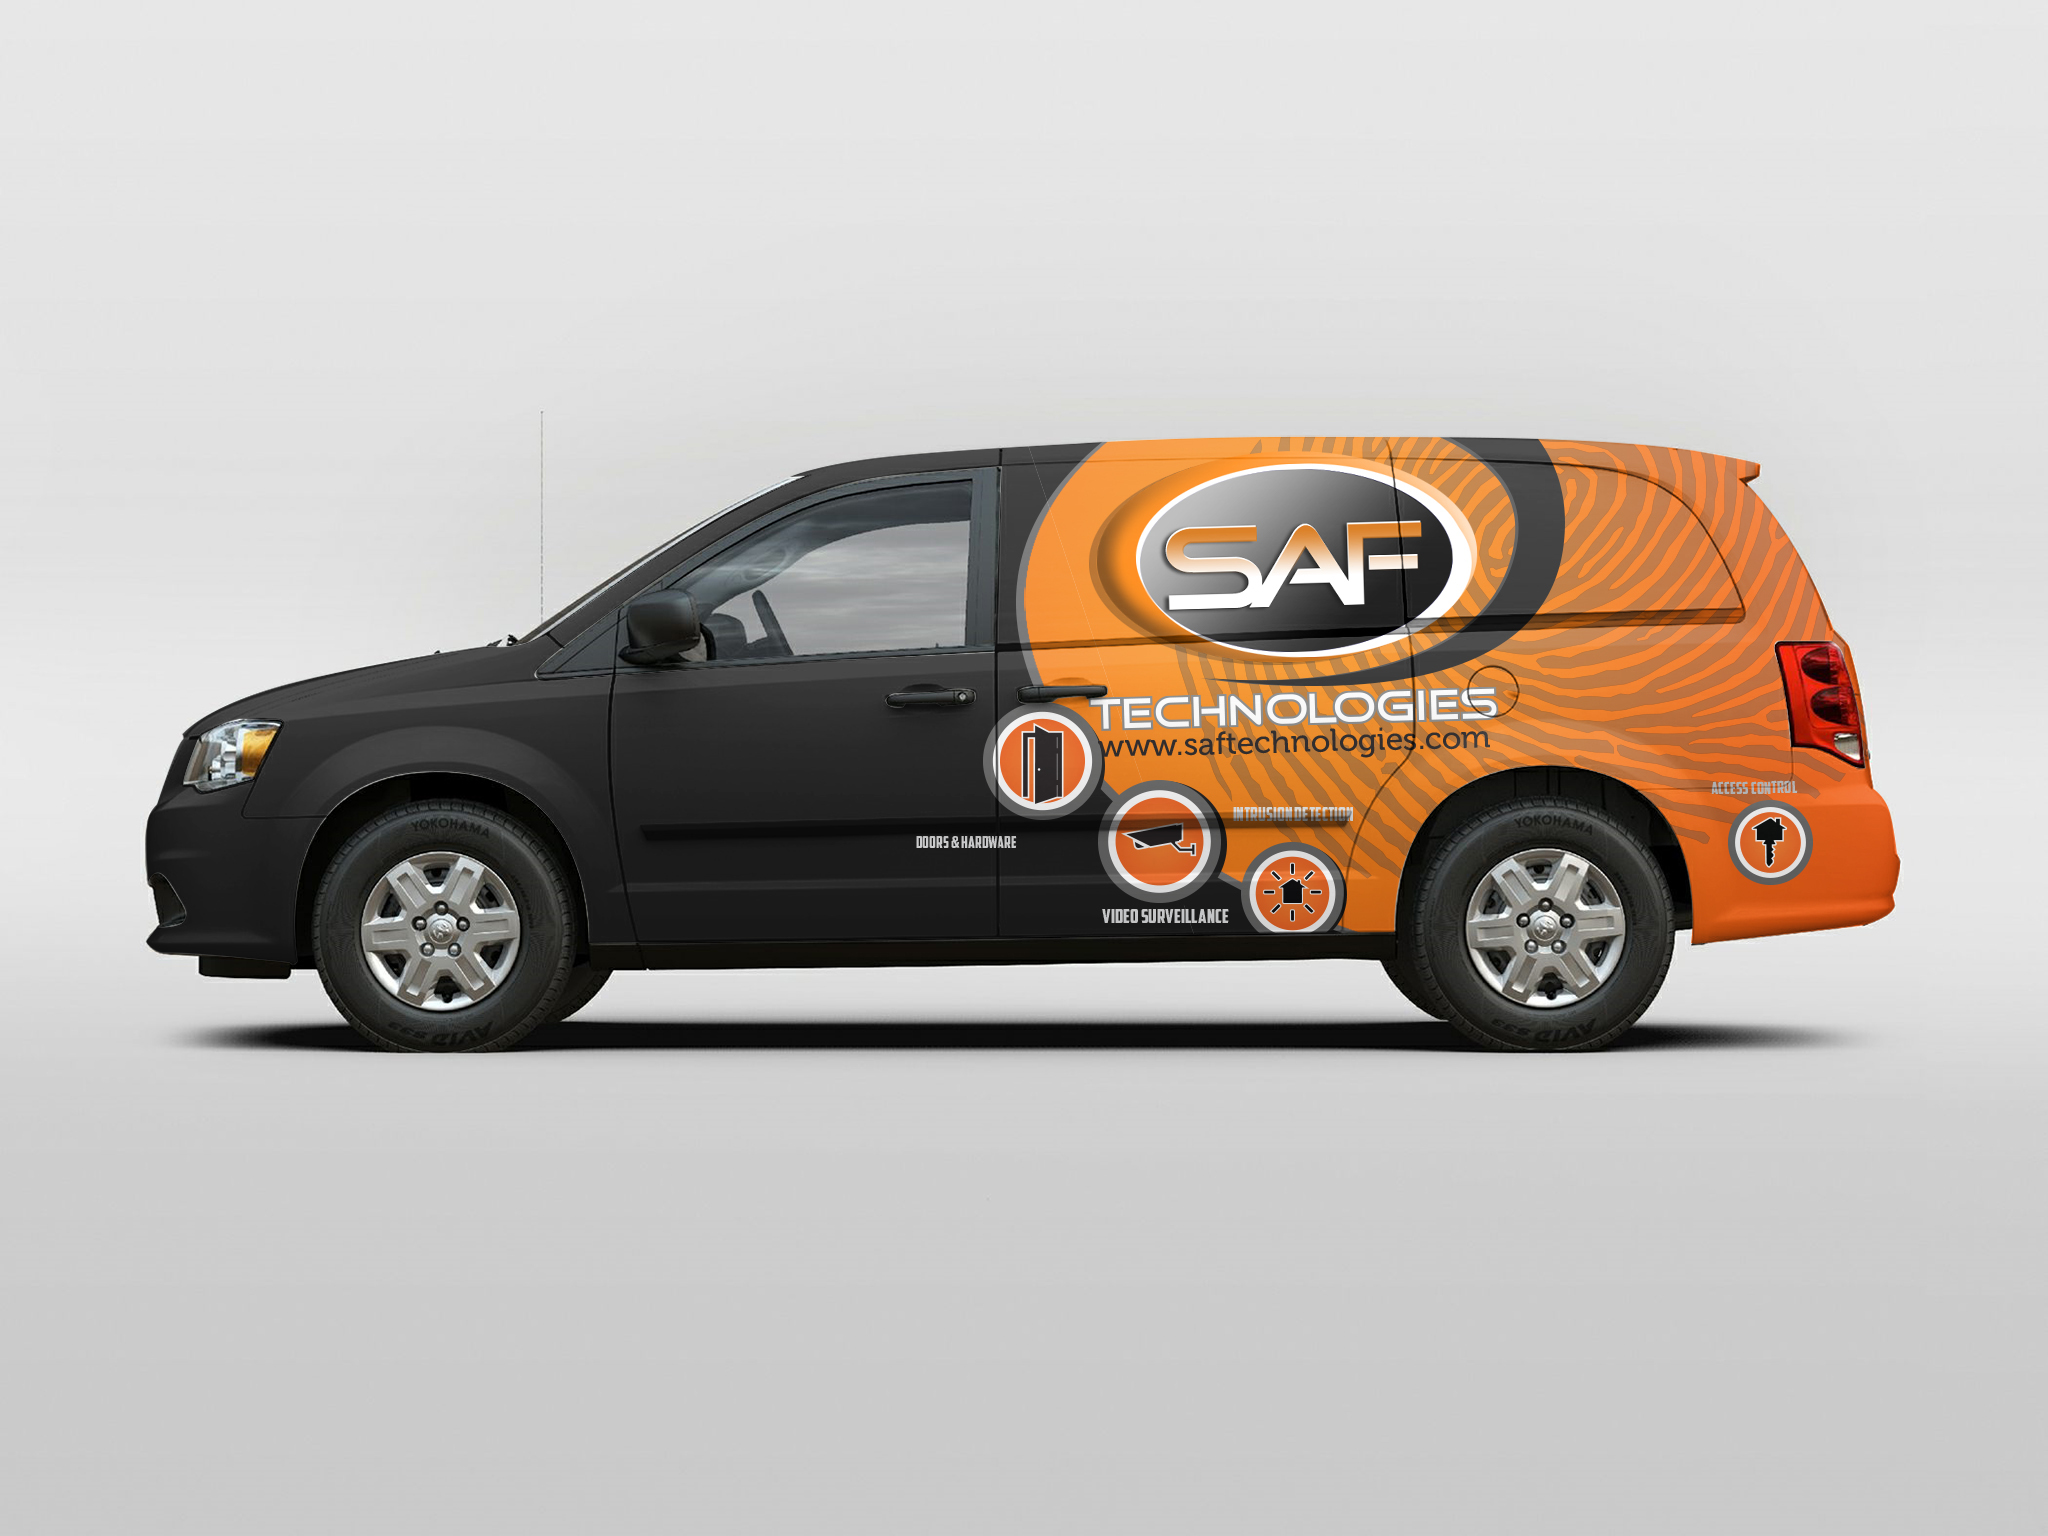 Best Car Wrapping Images On Pinterest Car Wrap Vehicle - Graphics for cars and trucksbusiness signs vehicle wraps car boat marine vinyl wraps